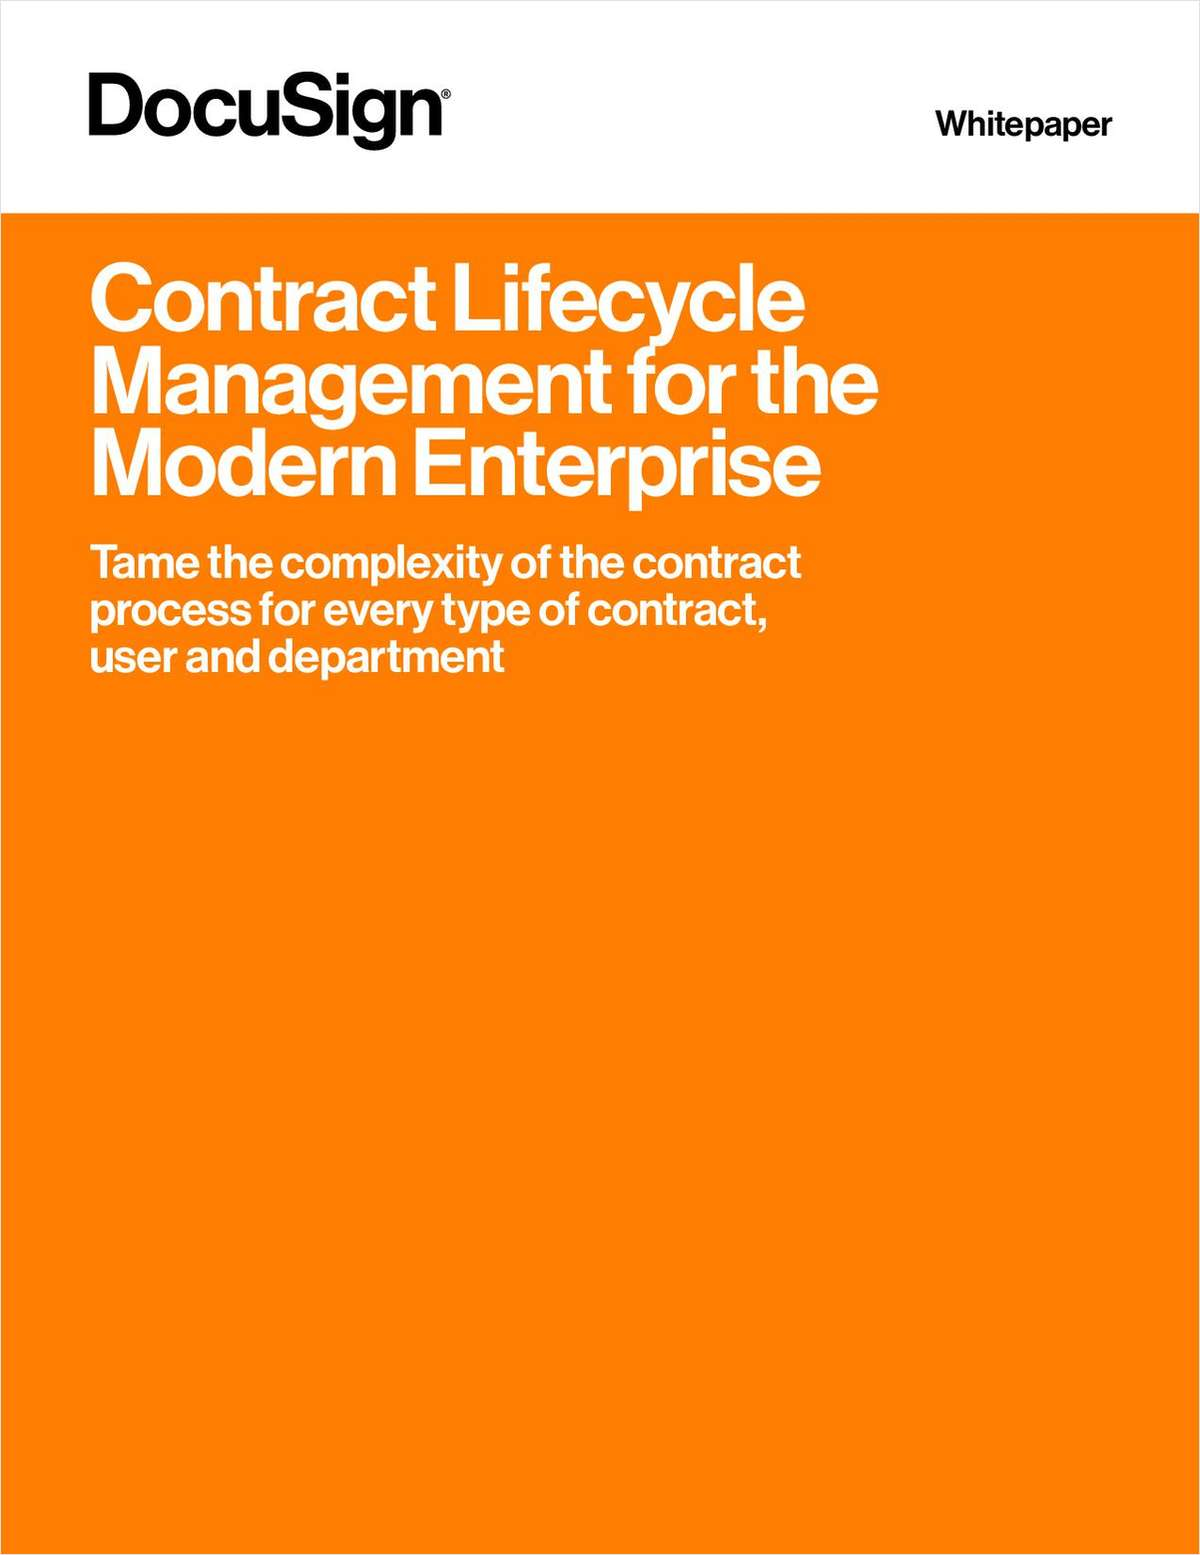 The contract process is notoriously complex, often with multiple parties and steps to  reach agreement on a document. Learn how to tame the complexity of the contract process for every type of contract, user and department in this white paper.